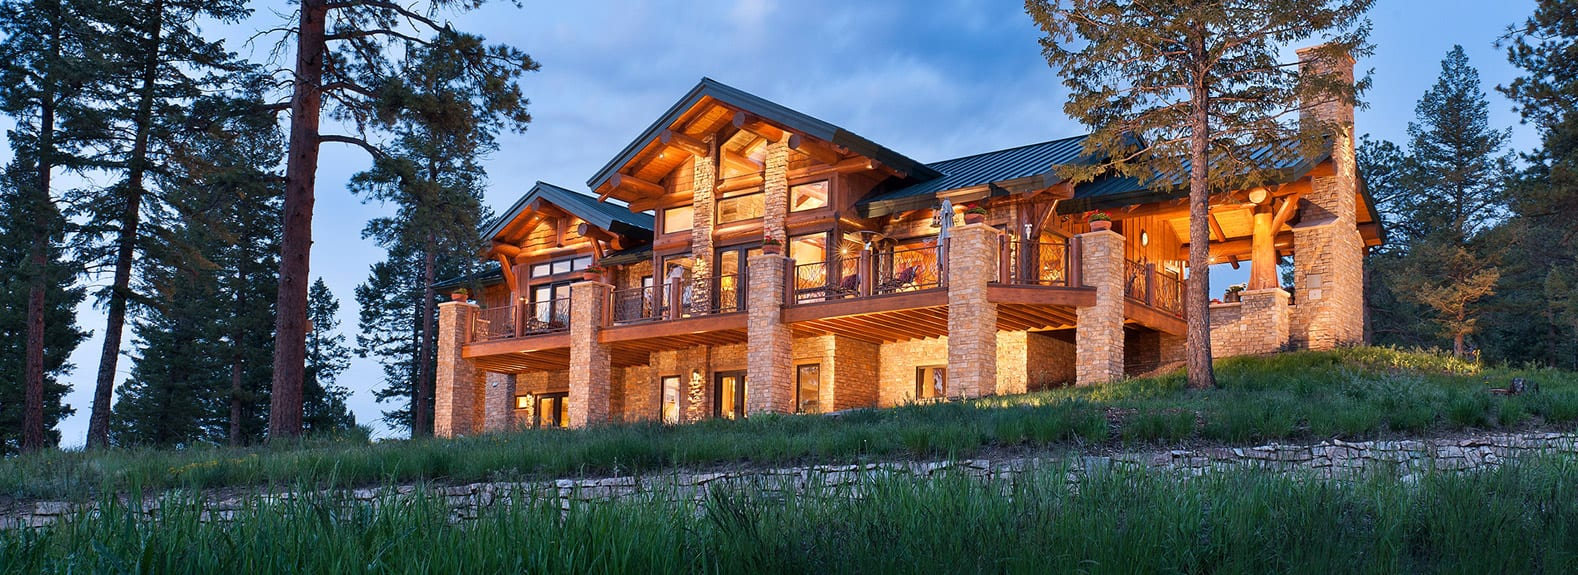 Delightful Mountain Style Homes #4: Log Post U0026 Beam Homes